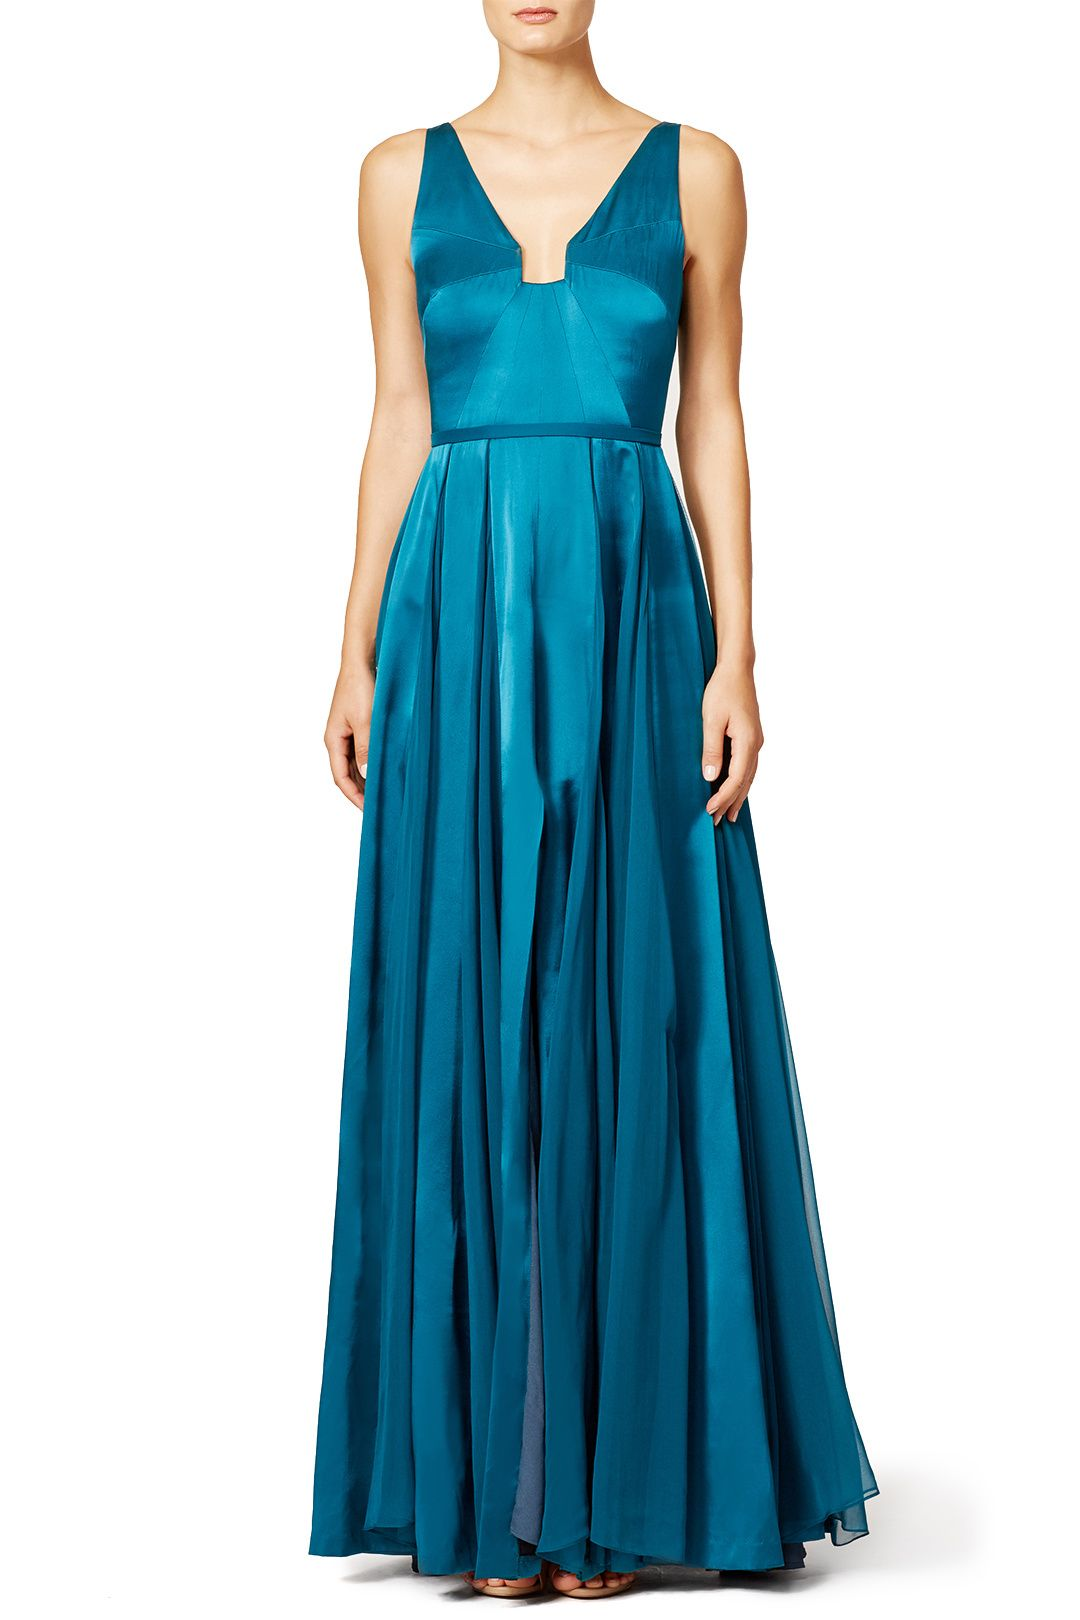 Teal Twirl Gown | Halston heritage, Teal and Gowns